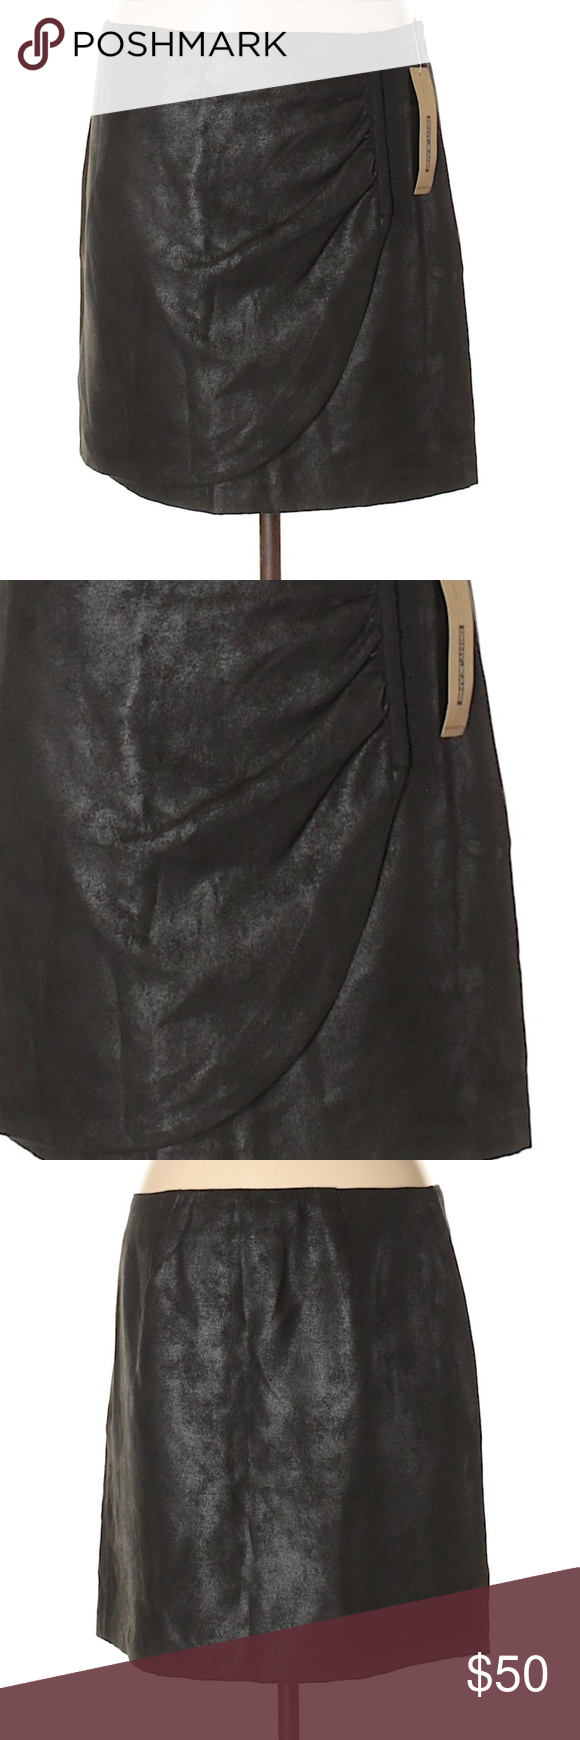 0e92d70d29 NWT DKNY faux leather/suede skirt, M New with tags, DKNY Jeans black ...